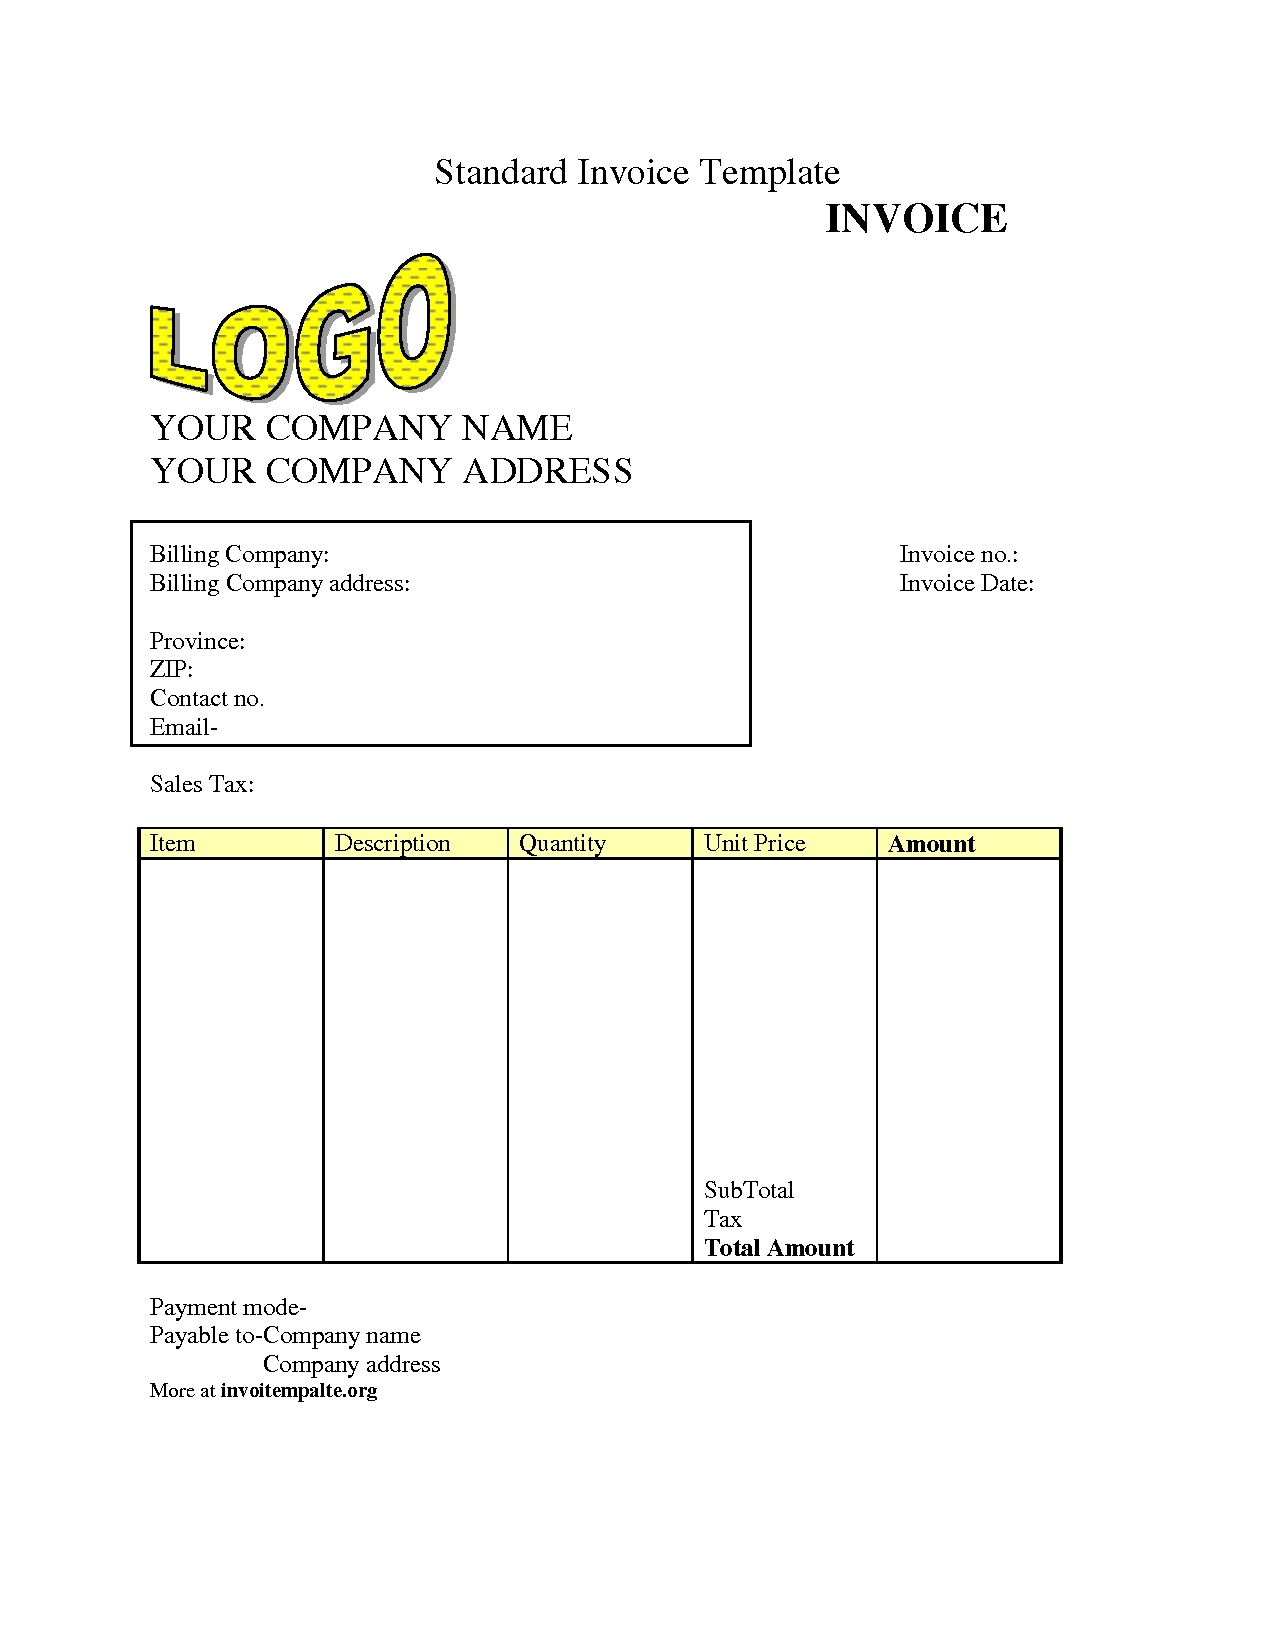 free template for invoice free invoice template downloads invoice template free 2016 1275 X 1650